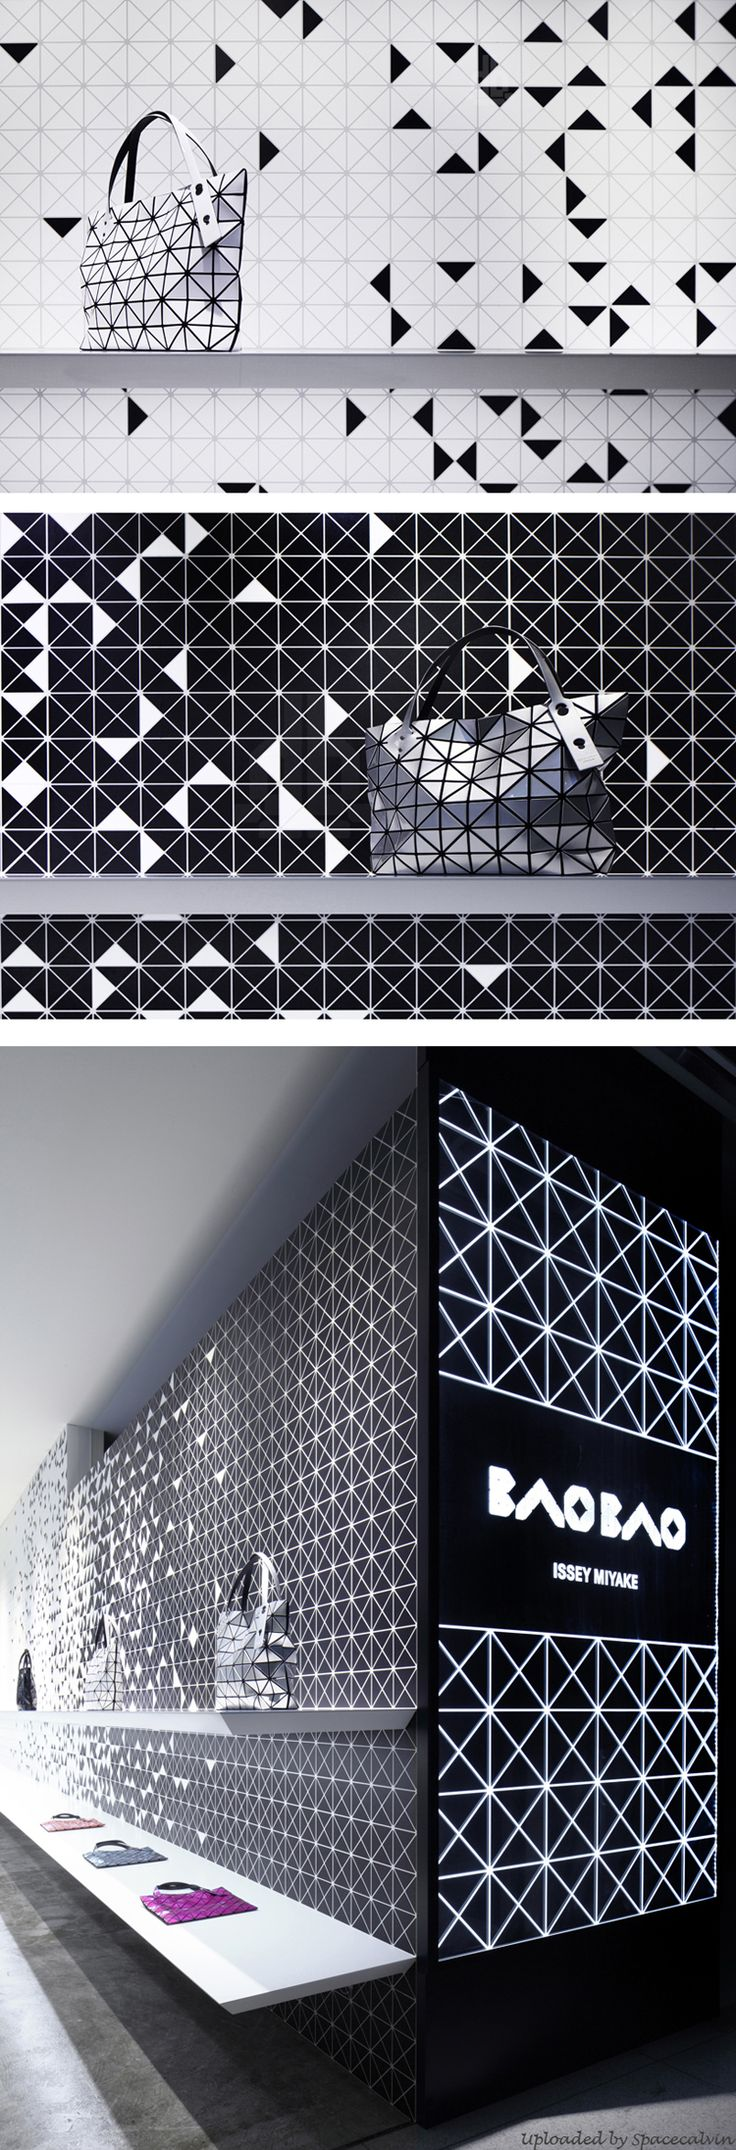 Retail design is important for your branding image. Don't be square, be triangular. TriadCreativeGroup.com